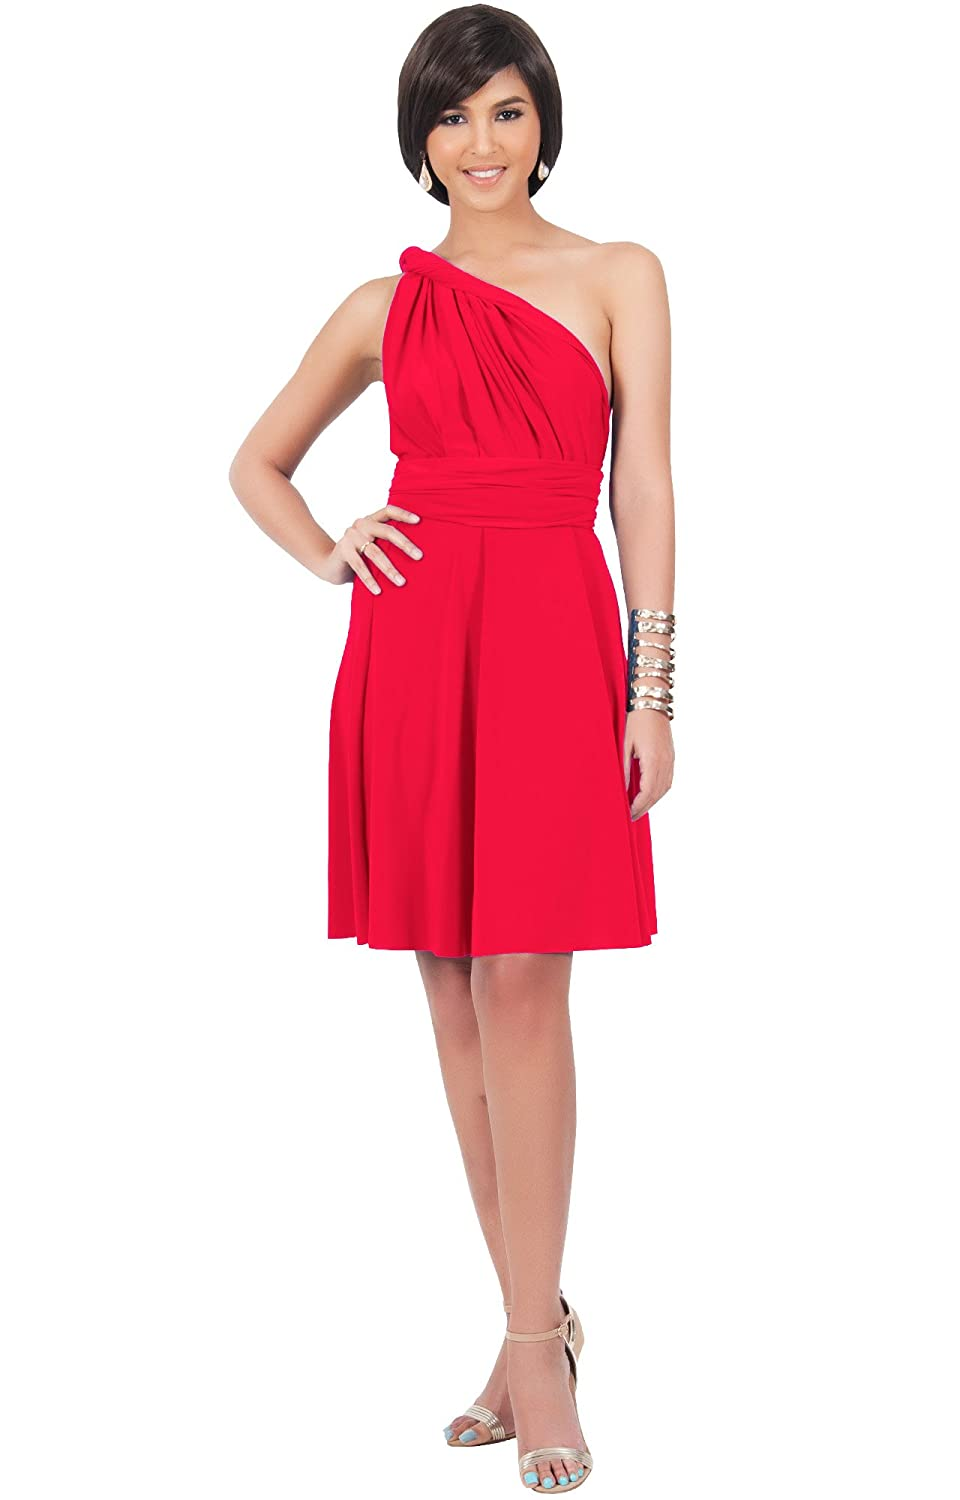 Koh koh womens short convertible wrap bridesmaids sexy cocktail koh koh womens short convertible wrap bridesmaids sexy cocktail flowy mini dress at amazon womens clothing store ombrellifo Image collections